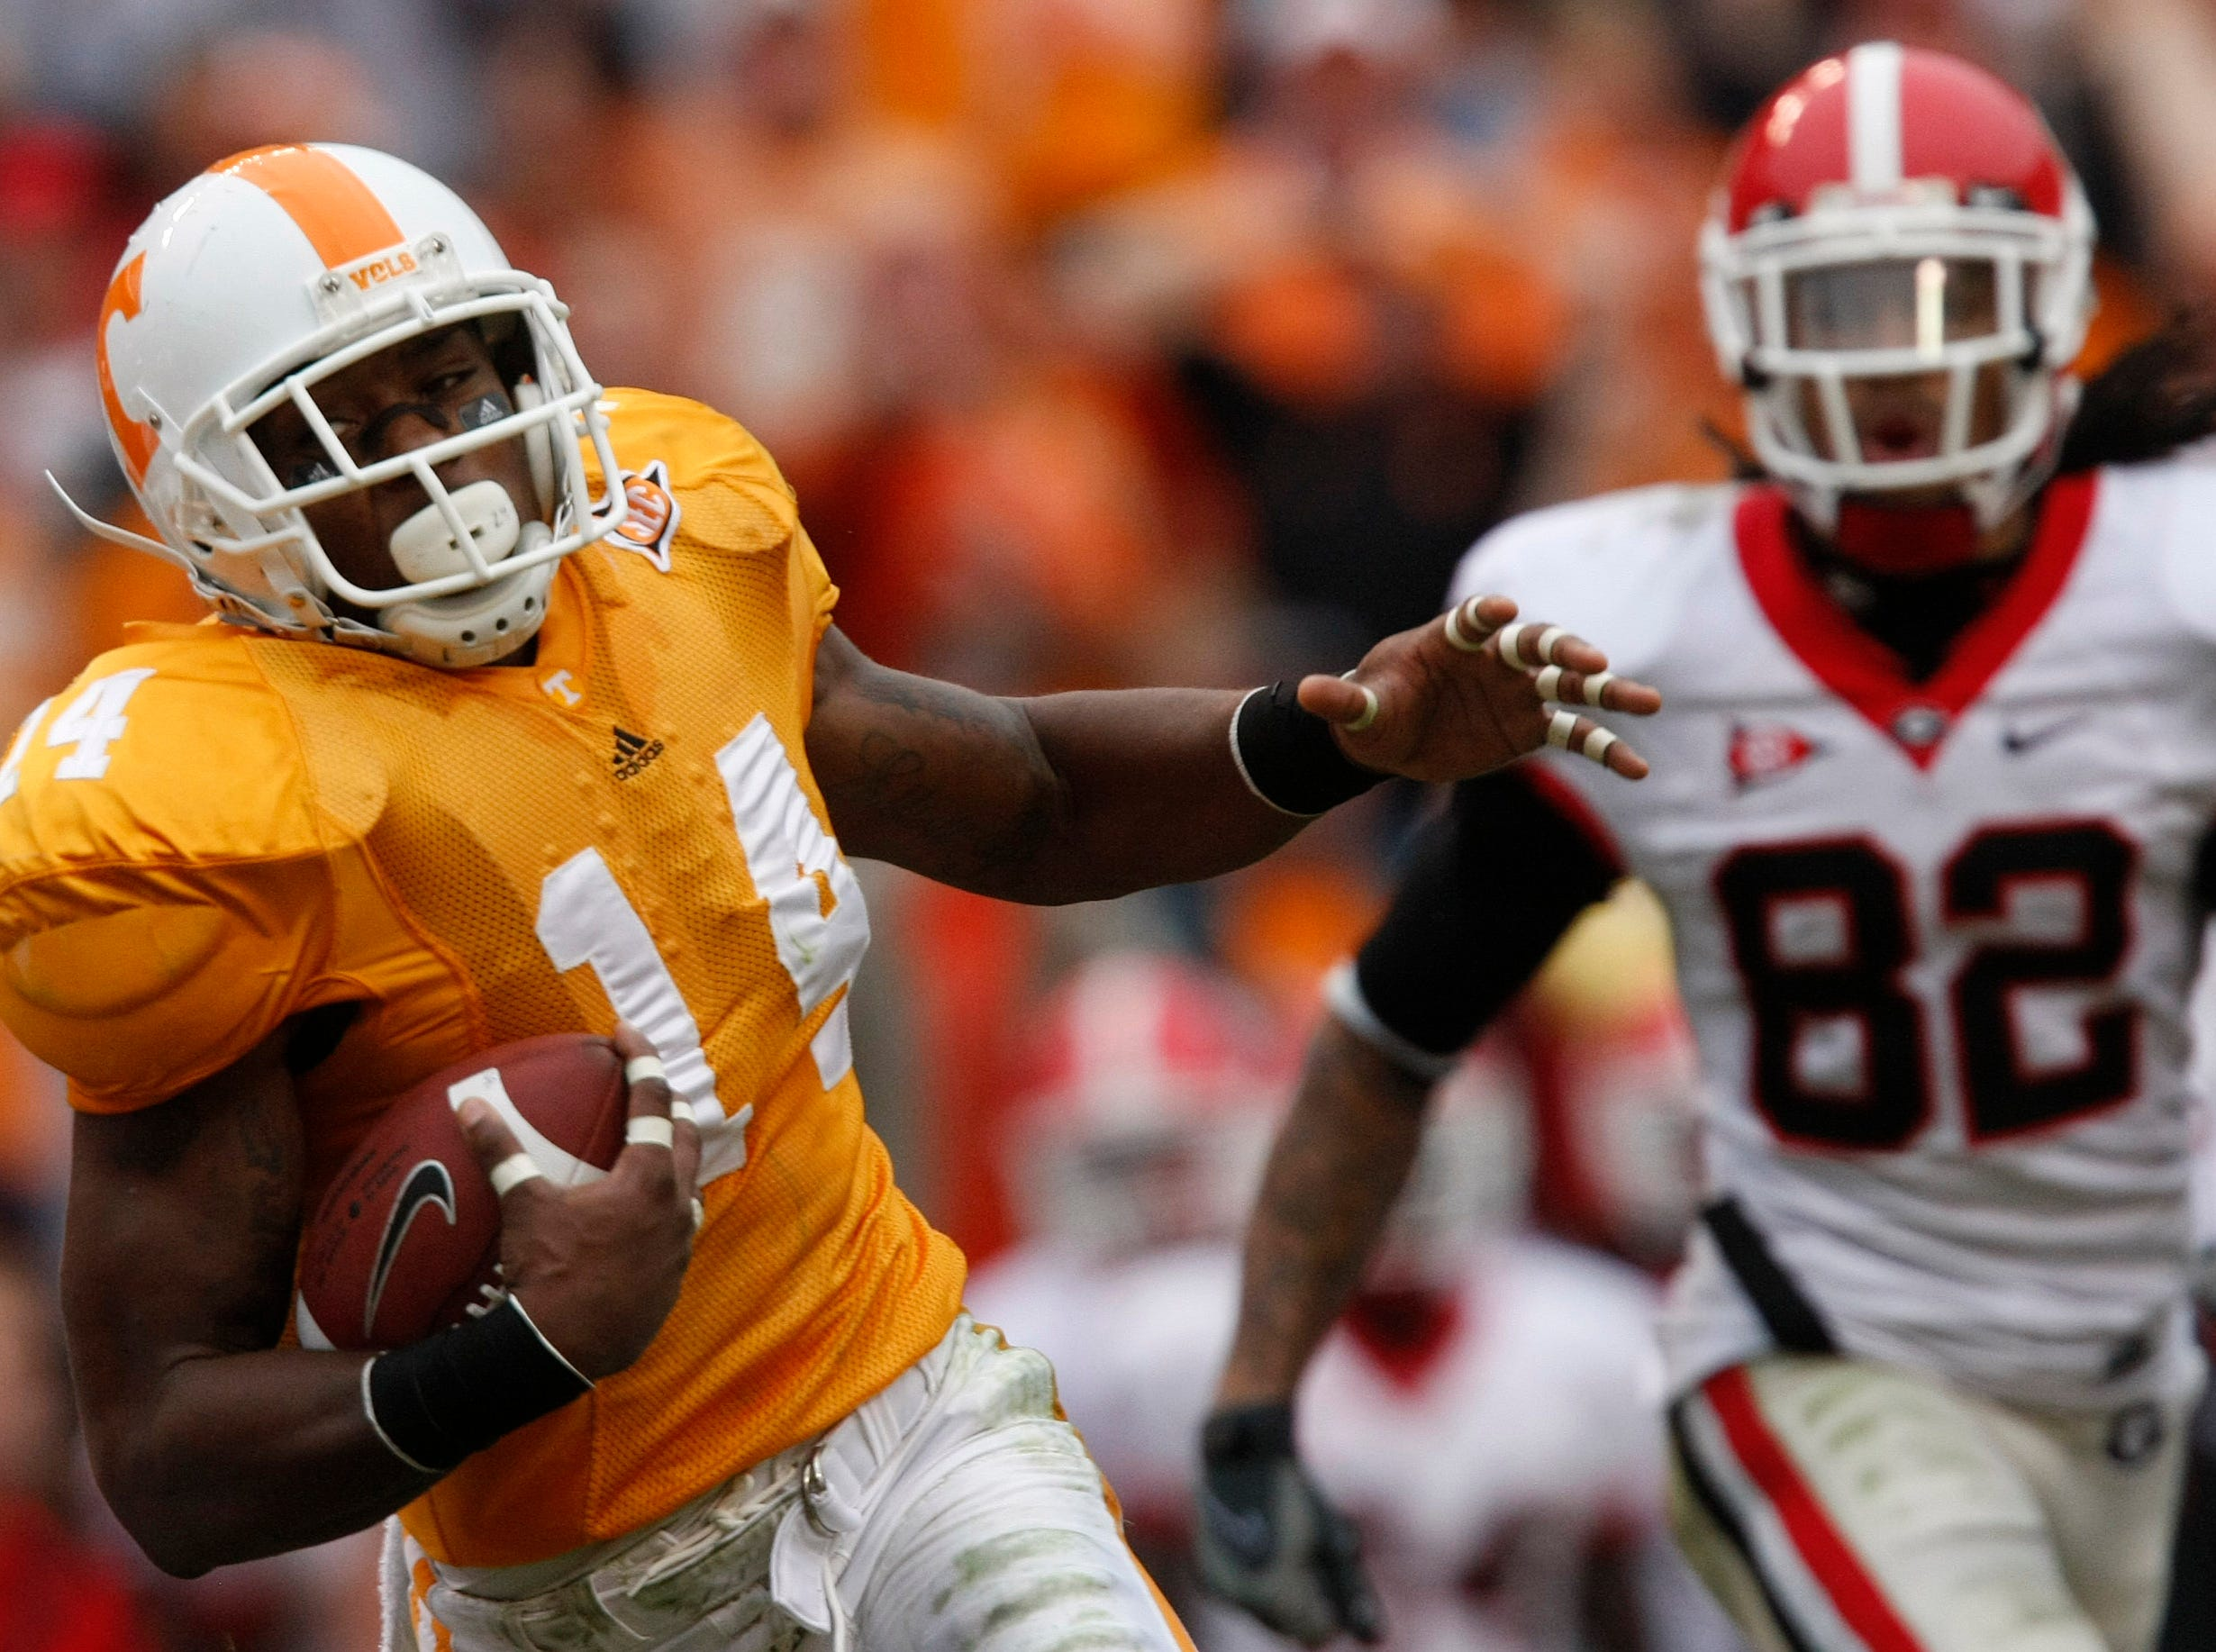 Tennessee's Eric Berry (14) returns an interception as he gets away from Georgia's Michael Moore (82) during the second half of an NCAA college football game Saturday, Oct. 10, 2009 in Knoxville, Tenn. Tennessee won 45-19.